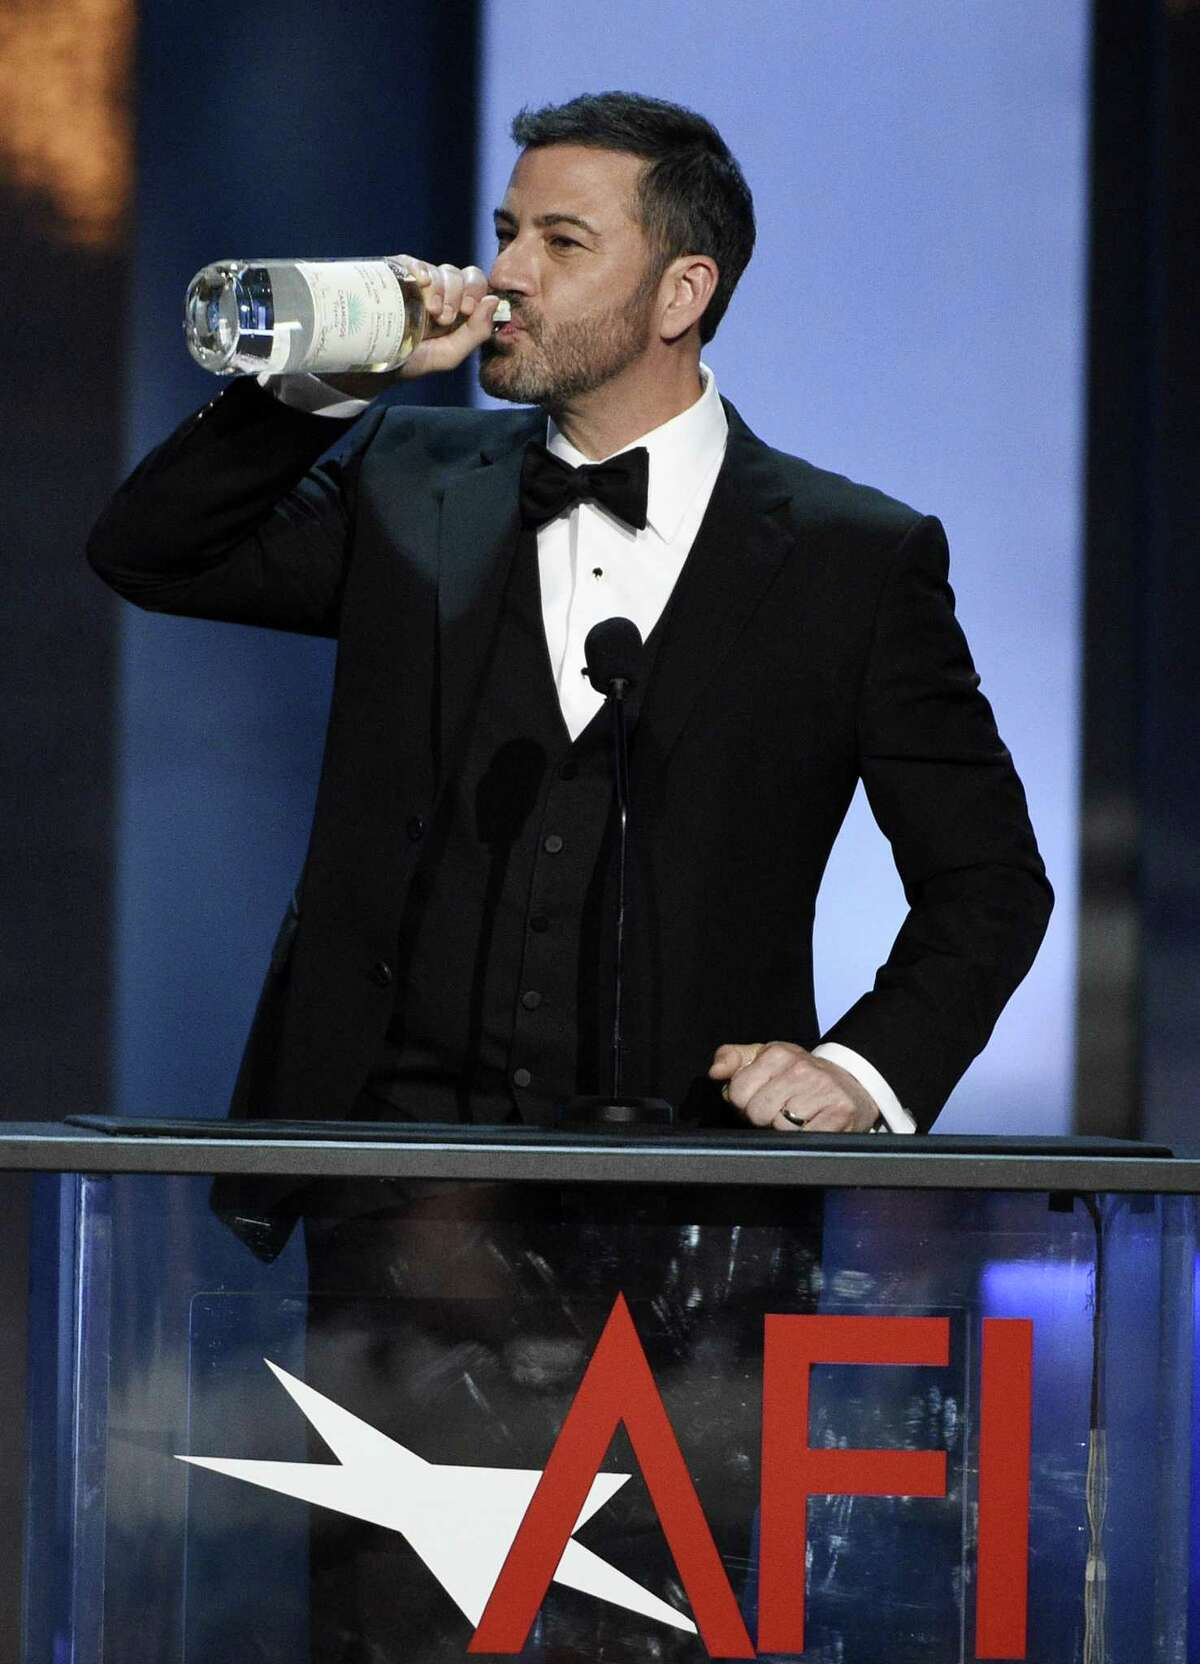 Comedian Jimmy Kimmel takes a drink from George Clooney's tequila brand Casamigos during the 46th AFI Life Achievement Award gala ceremony honoring Clooney at the Dolby Theatre, Thursday, June 7, 2018, in Los Angeles. (Photo by Chris Pizzello/Invision/AP)